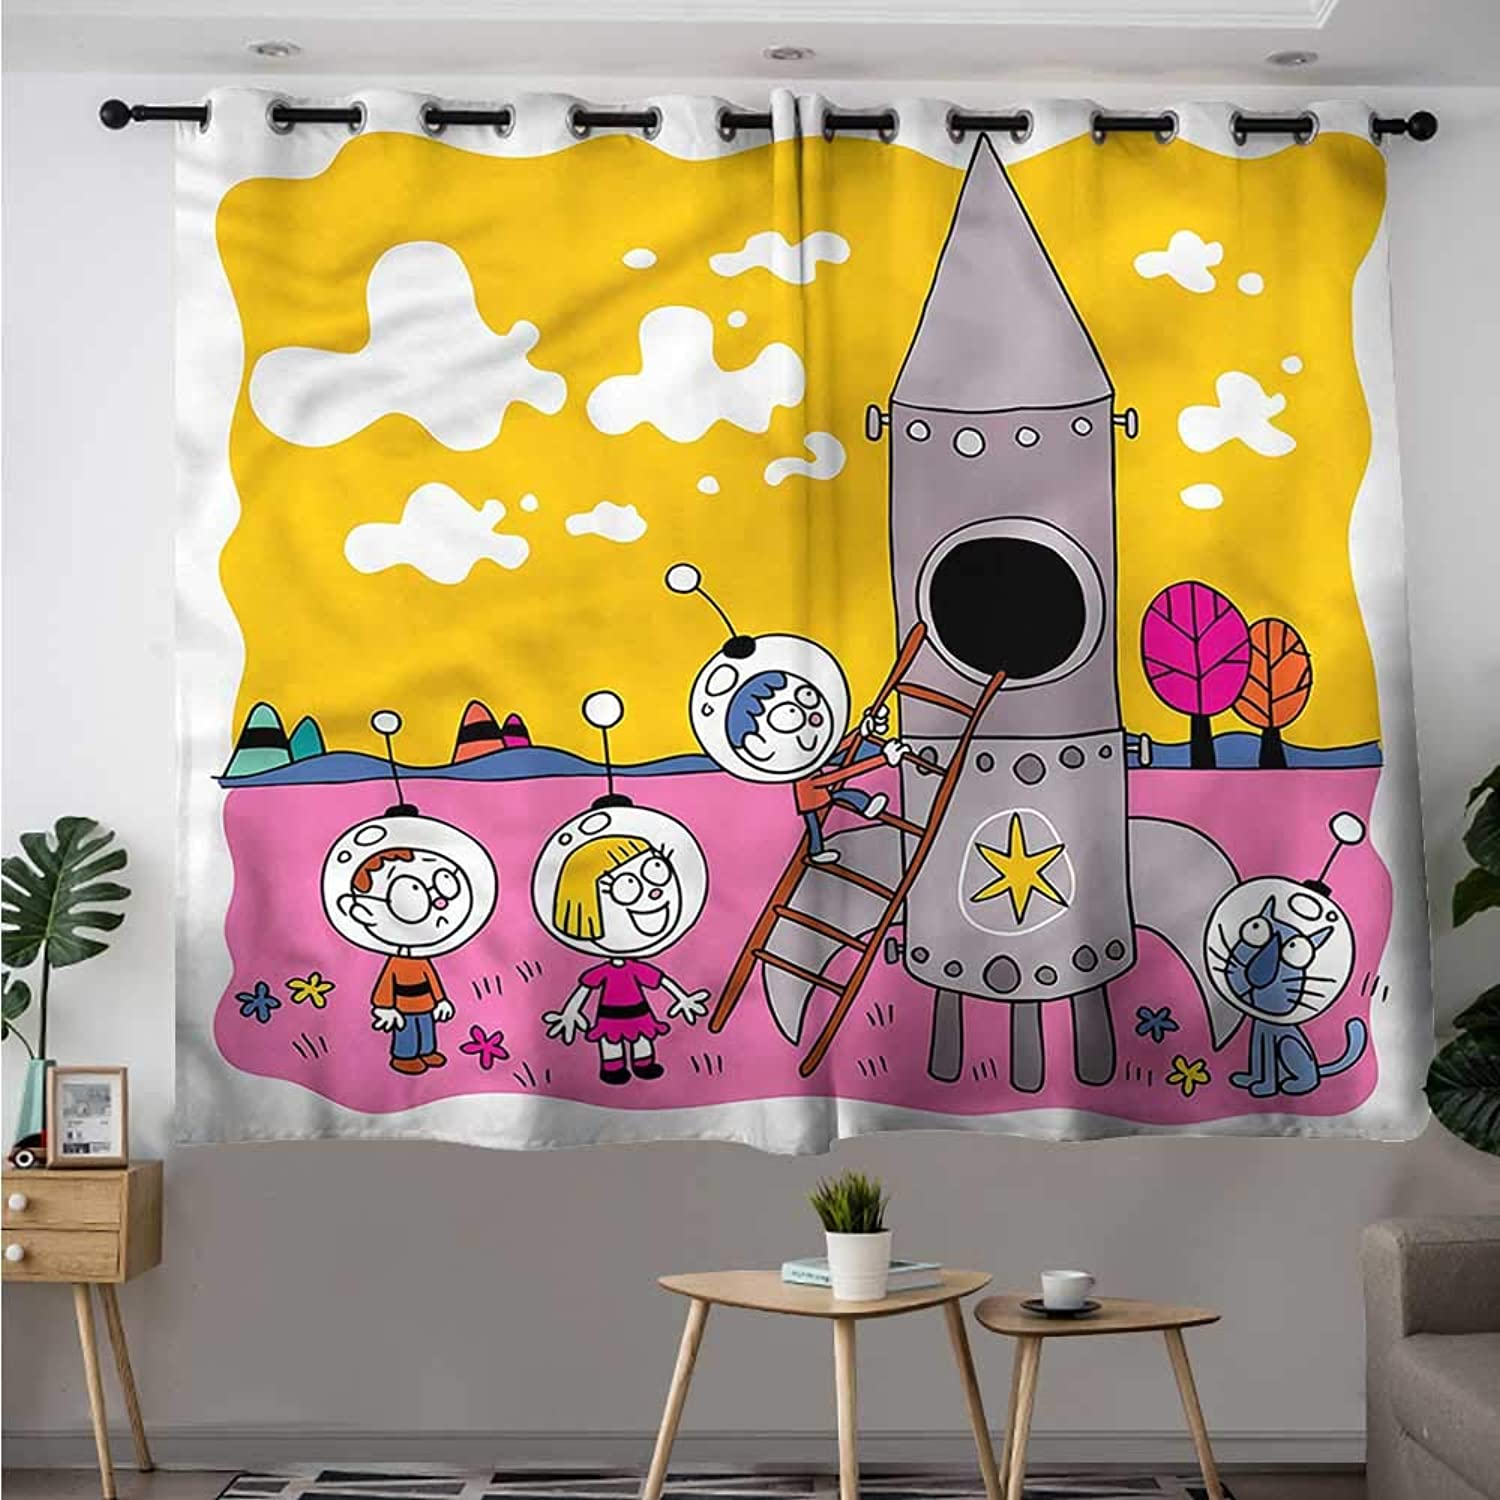 Fbdace Cartoon Thermal Insulated Blackout Curtains Astronaut Kids with Rocket Room Darkening, Noise Reducing W 63  XL 45